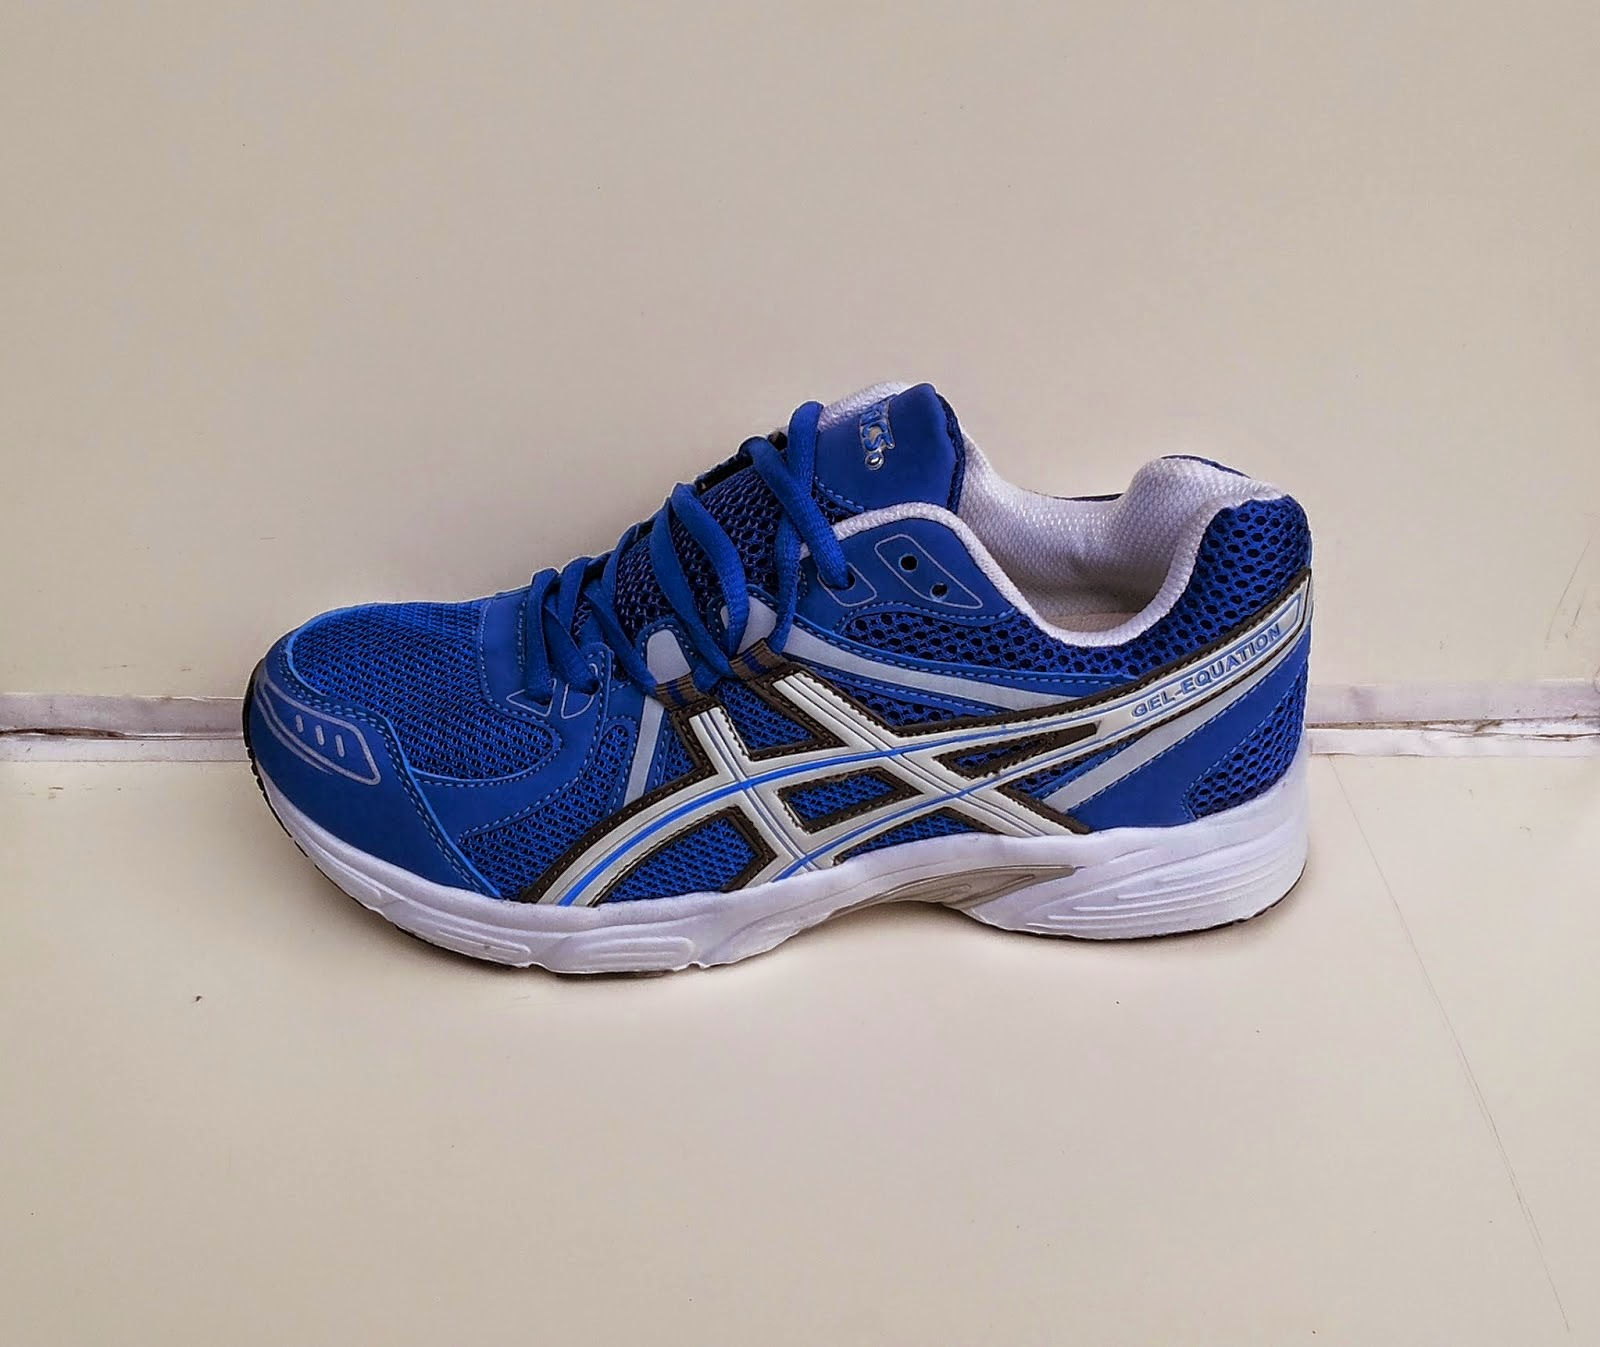 Jual sepatu Asic Gel-Equation, Asic Gel-Equation murah, Grosir Asic Gel-Equation, Asic Gel-Equation terbaru 2014, Sepatu Asic Gel-Equation termurah